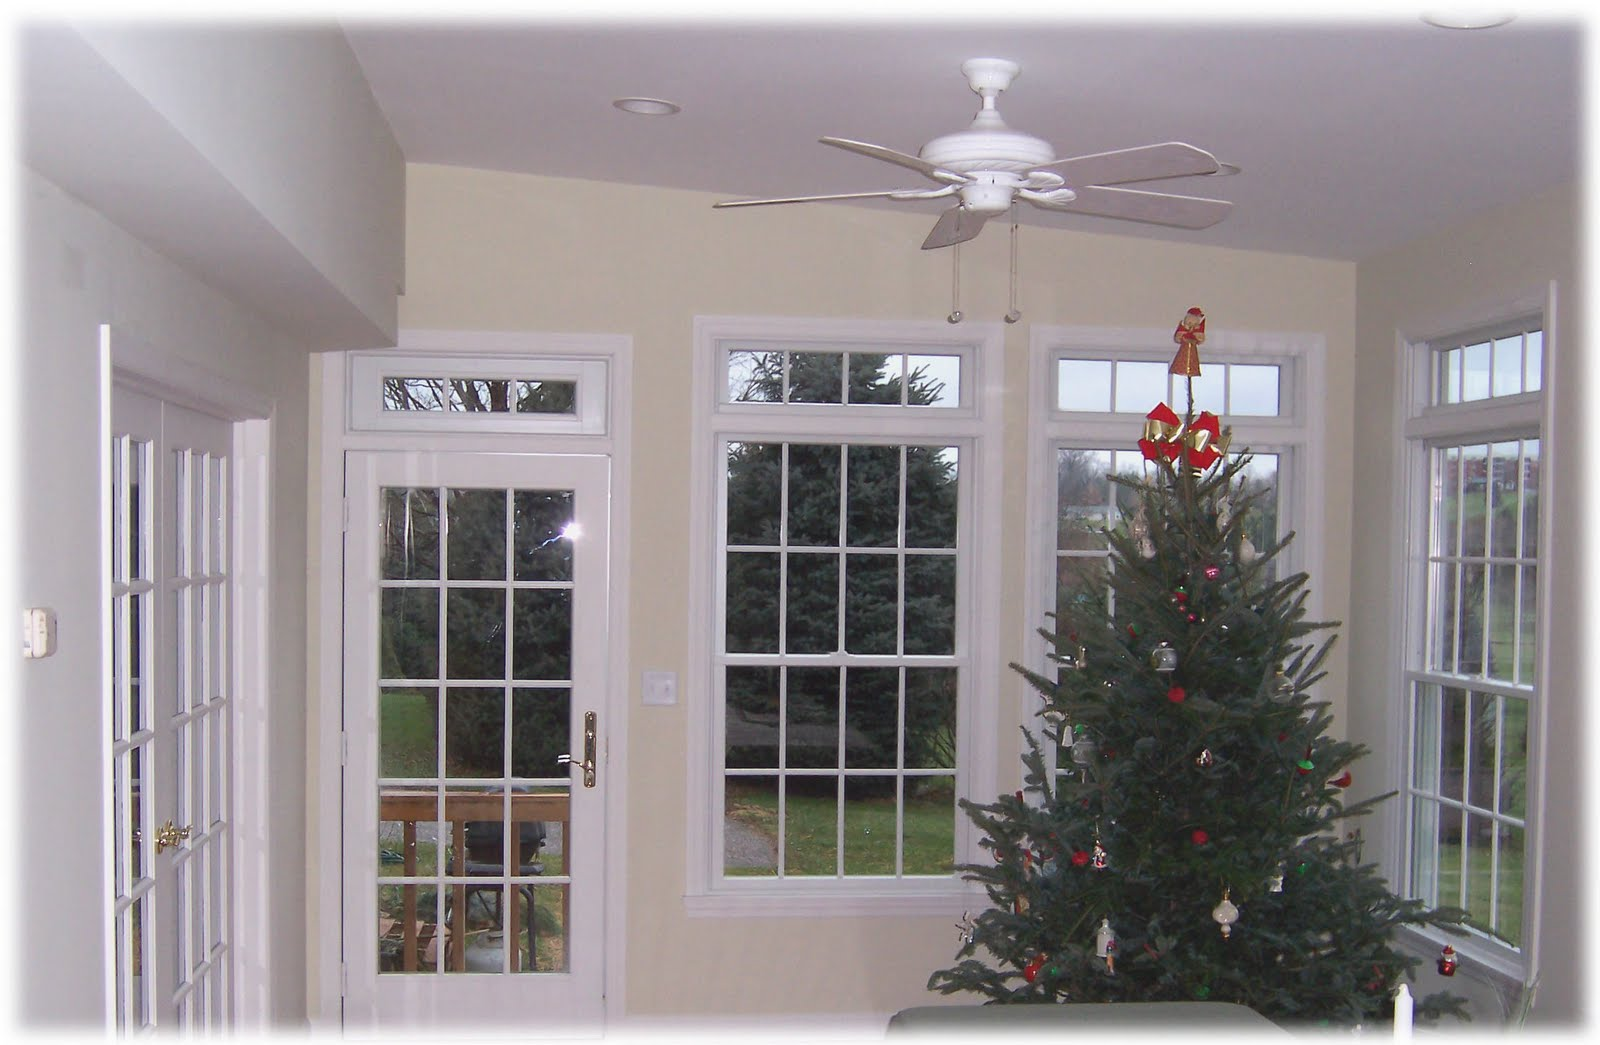 All about window window designs modern or old fashioned House window layout